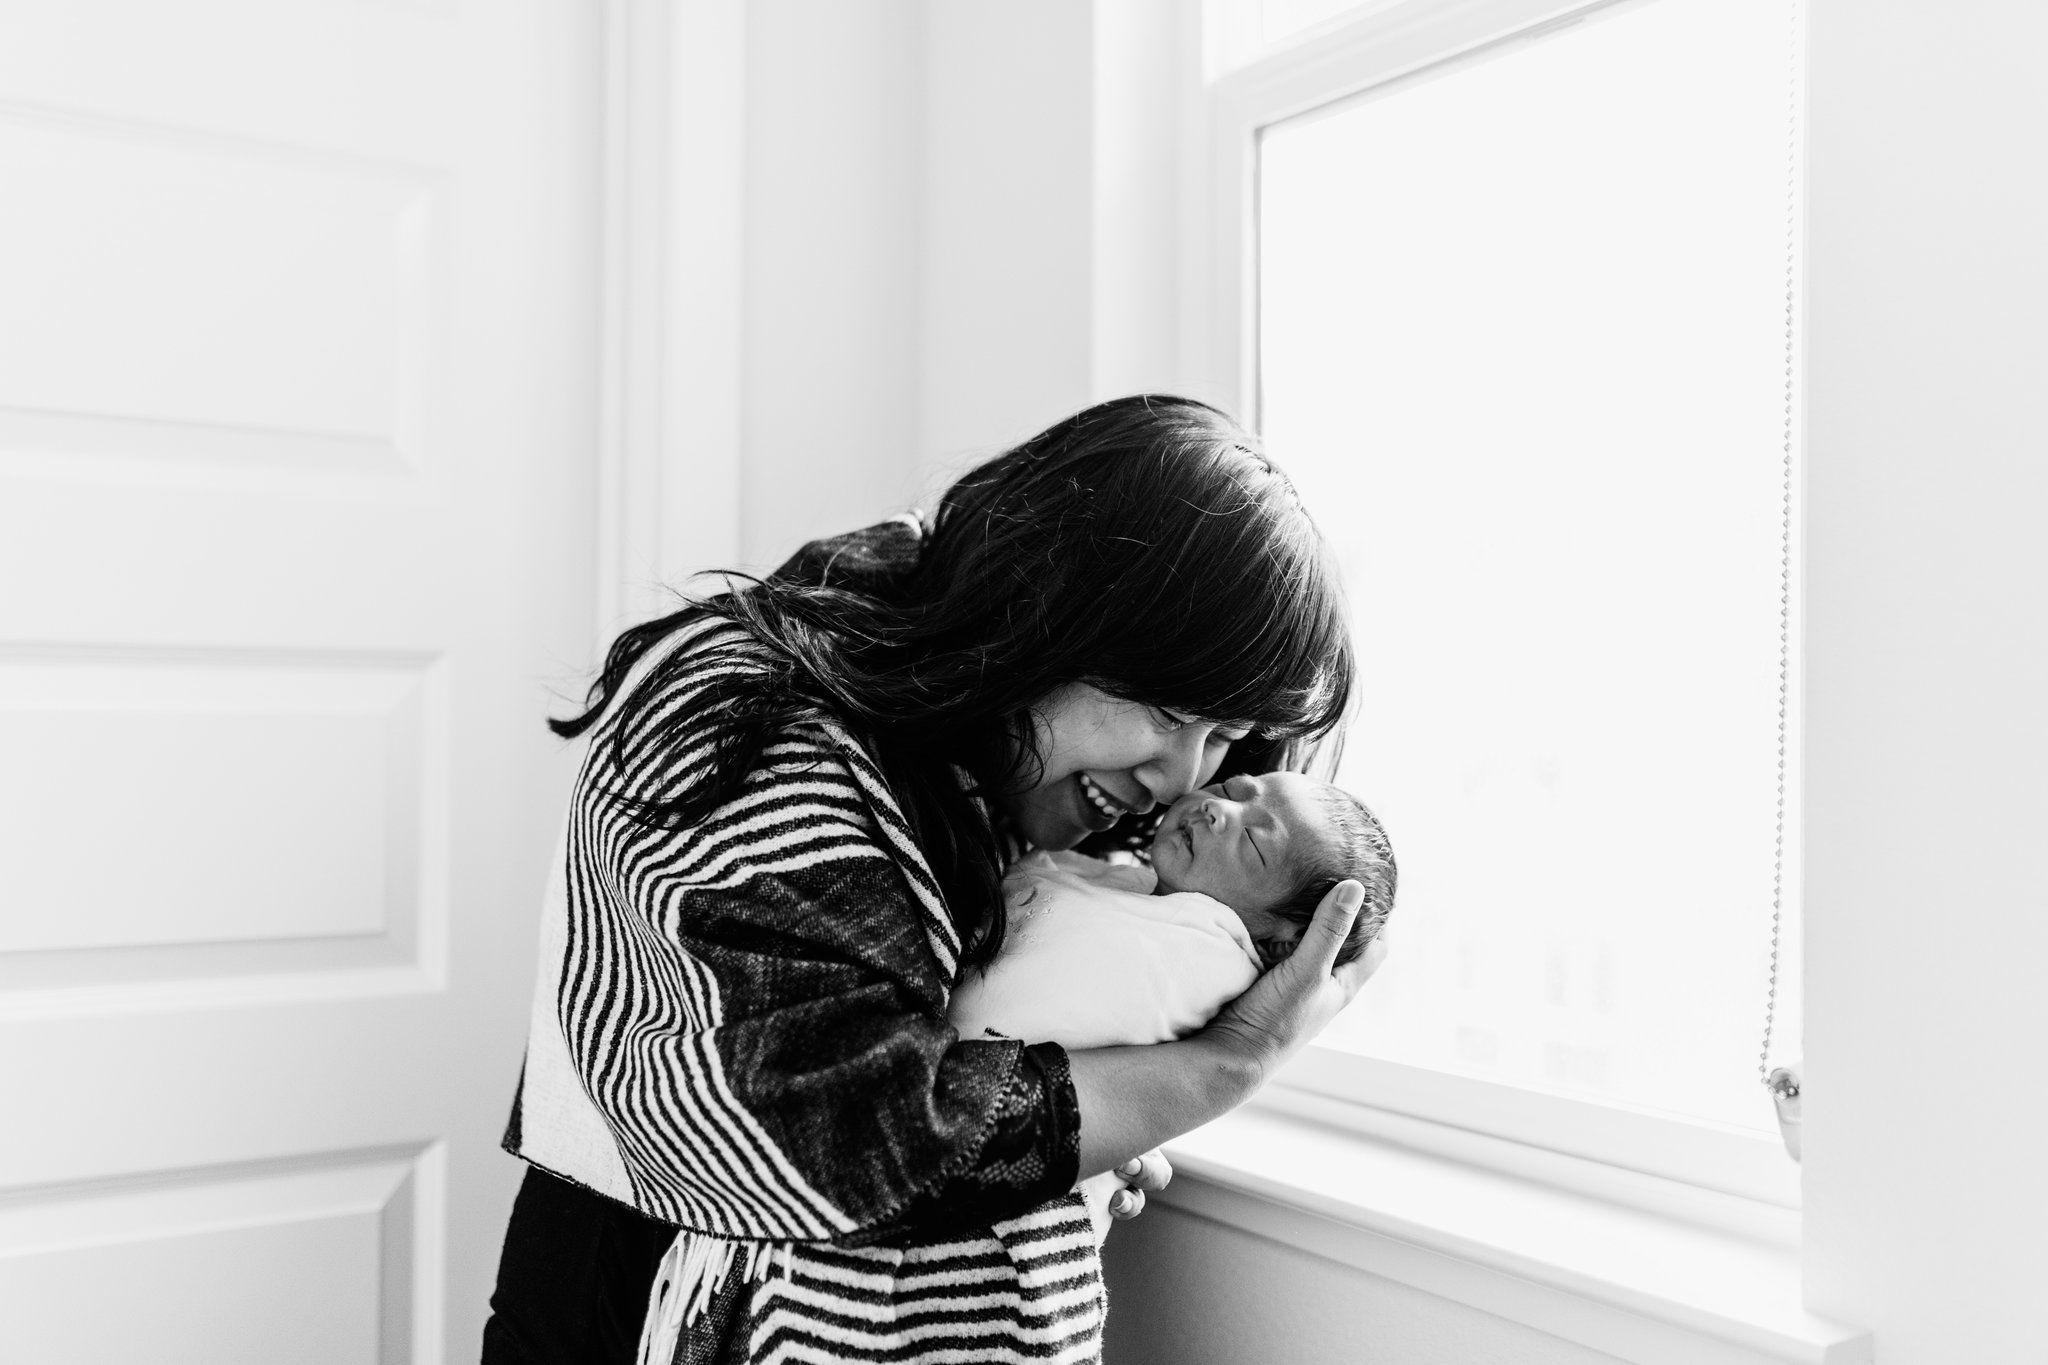 San-Francisco-Bay-Area-And-East-Bay-Berkeley-Oakland-Alameda-Documentary-Storytelling-Newborn-Photographer-14